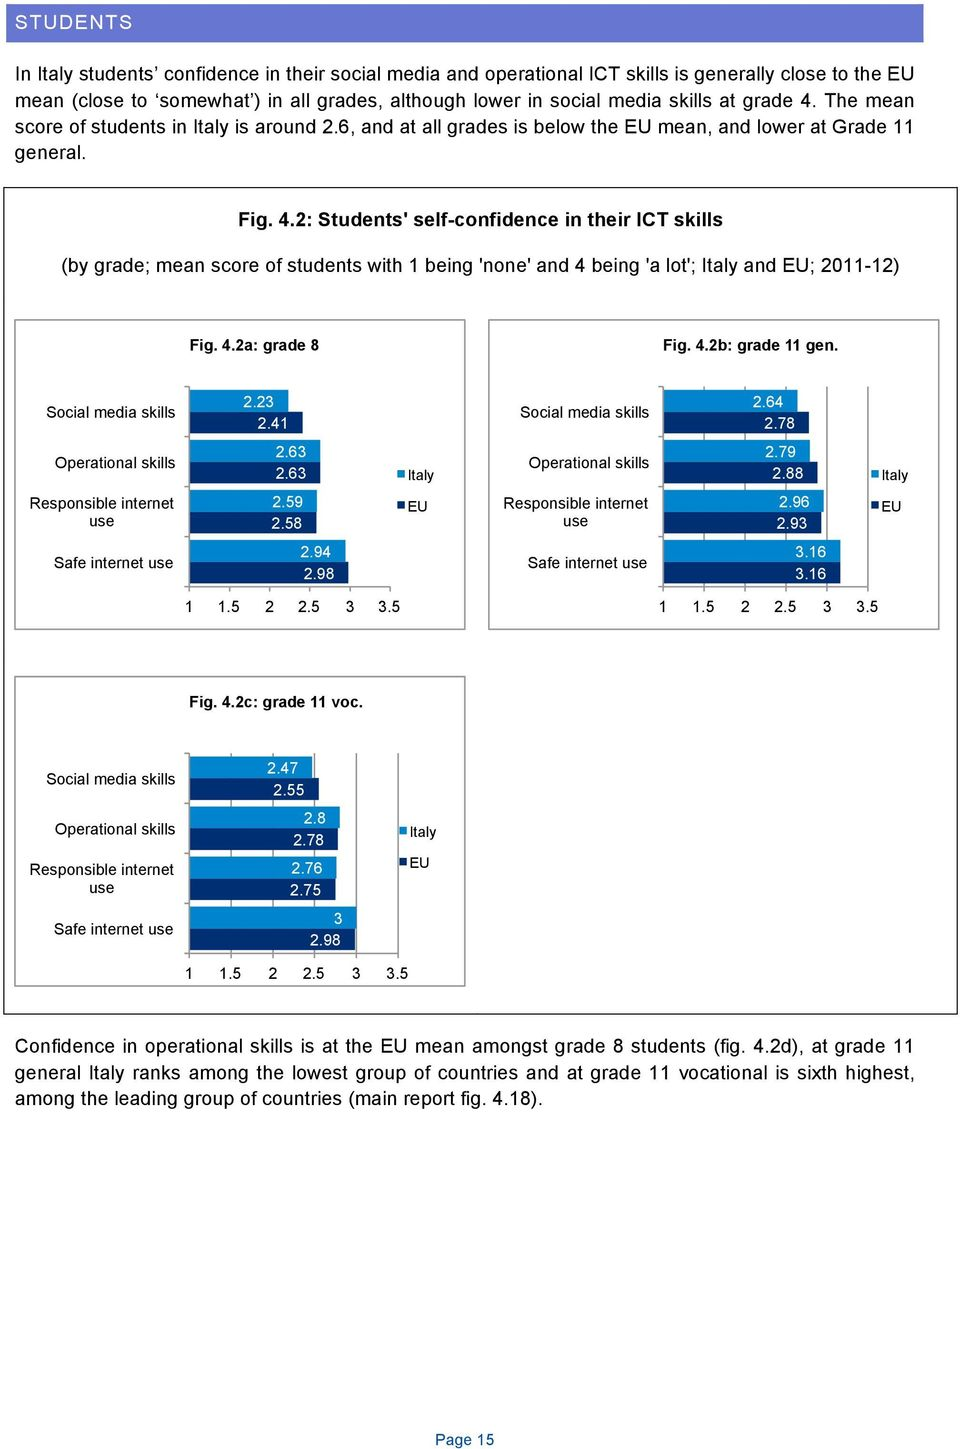 2: Students' self-confidence in their ICT skills (by grade; mean score of students with 1 being 'none' and 4 being 'a lot'; and ; 2011-12) Fig. 4.2a: grade 8 Fig. 4.2b: grade 11 gen.